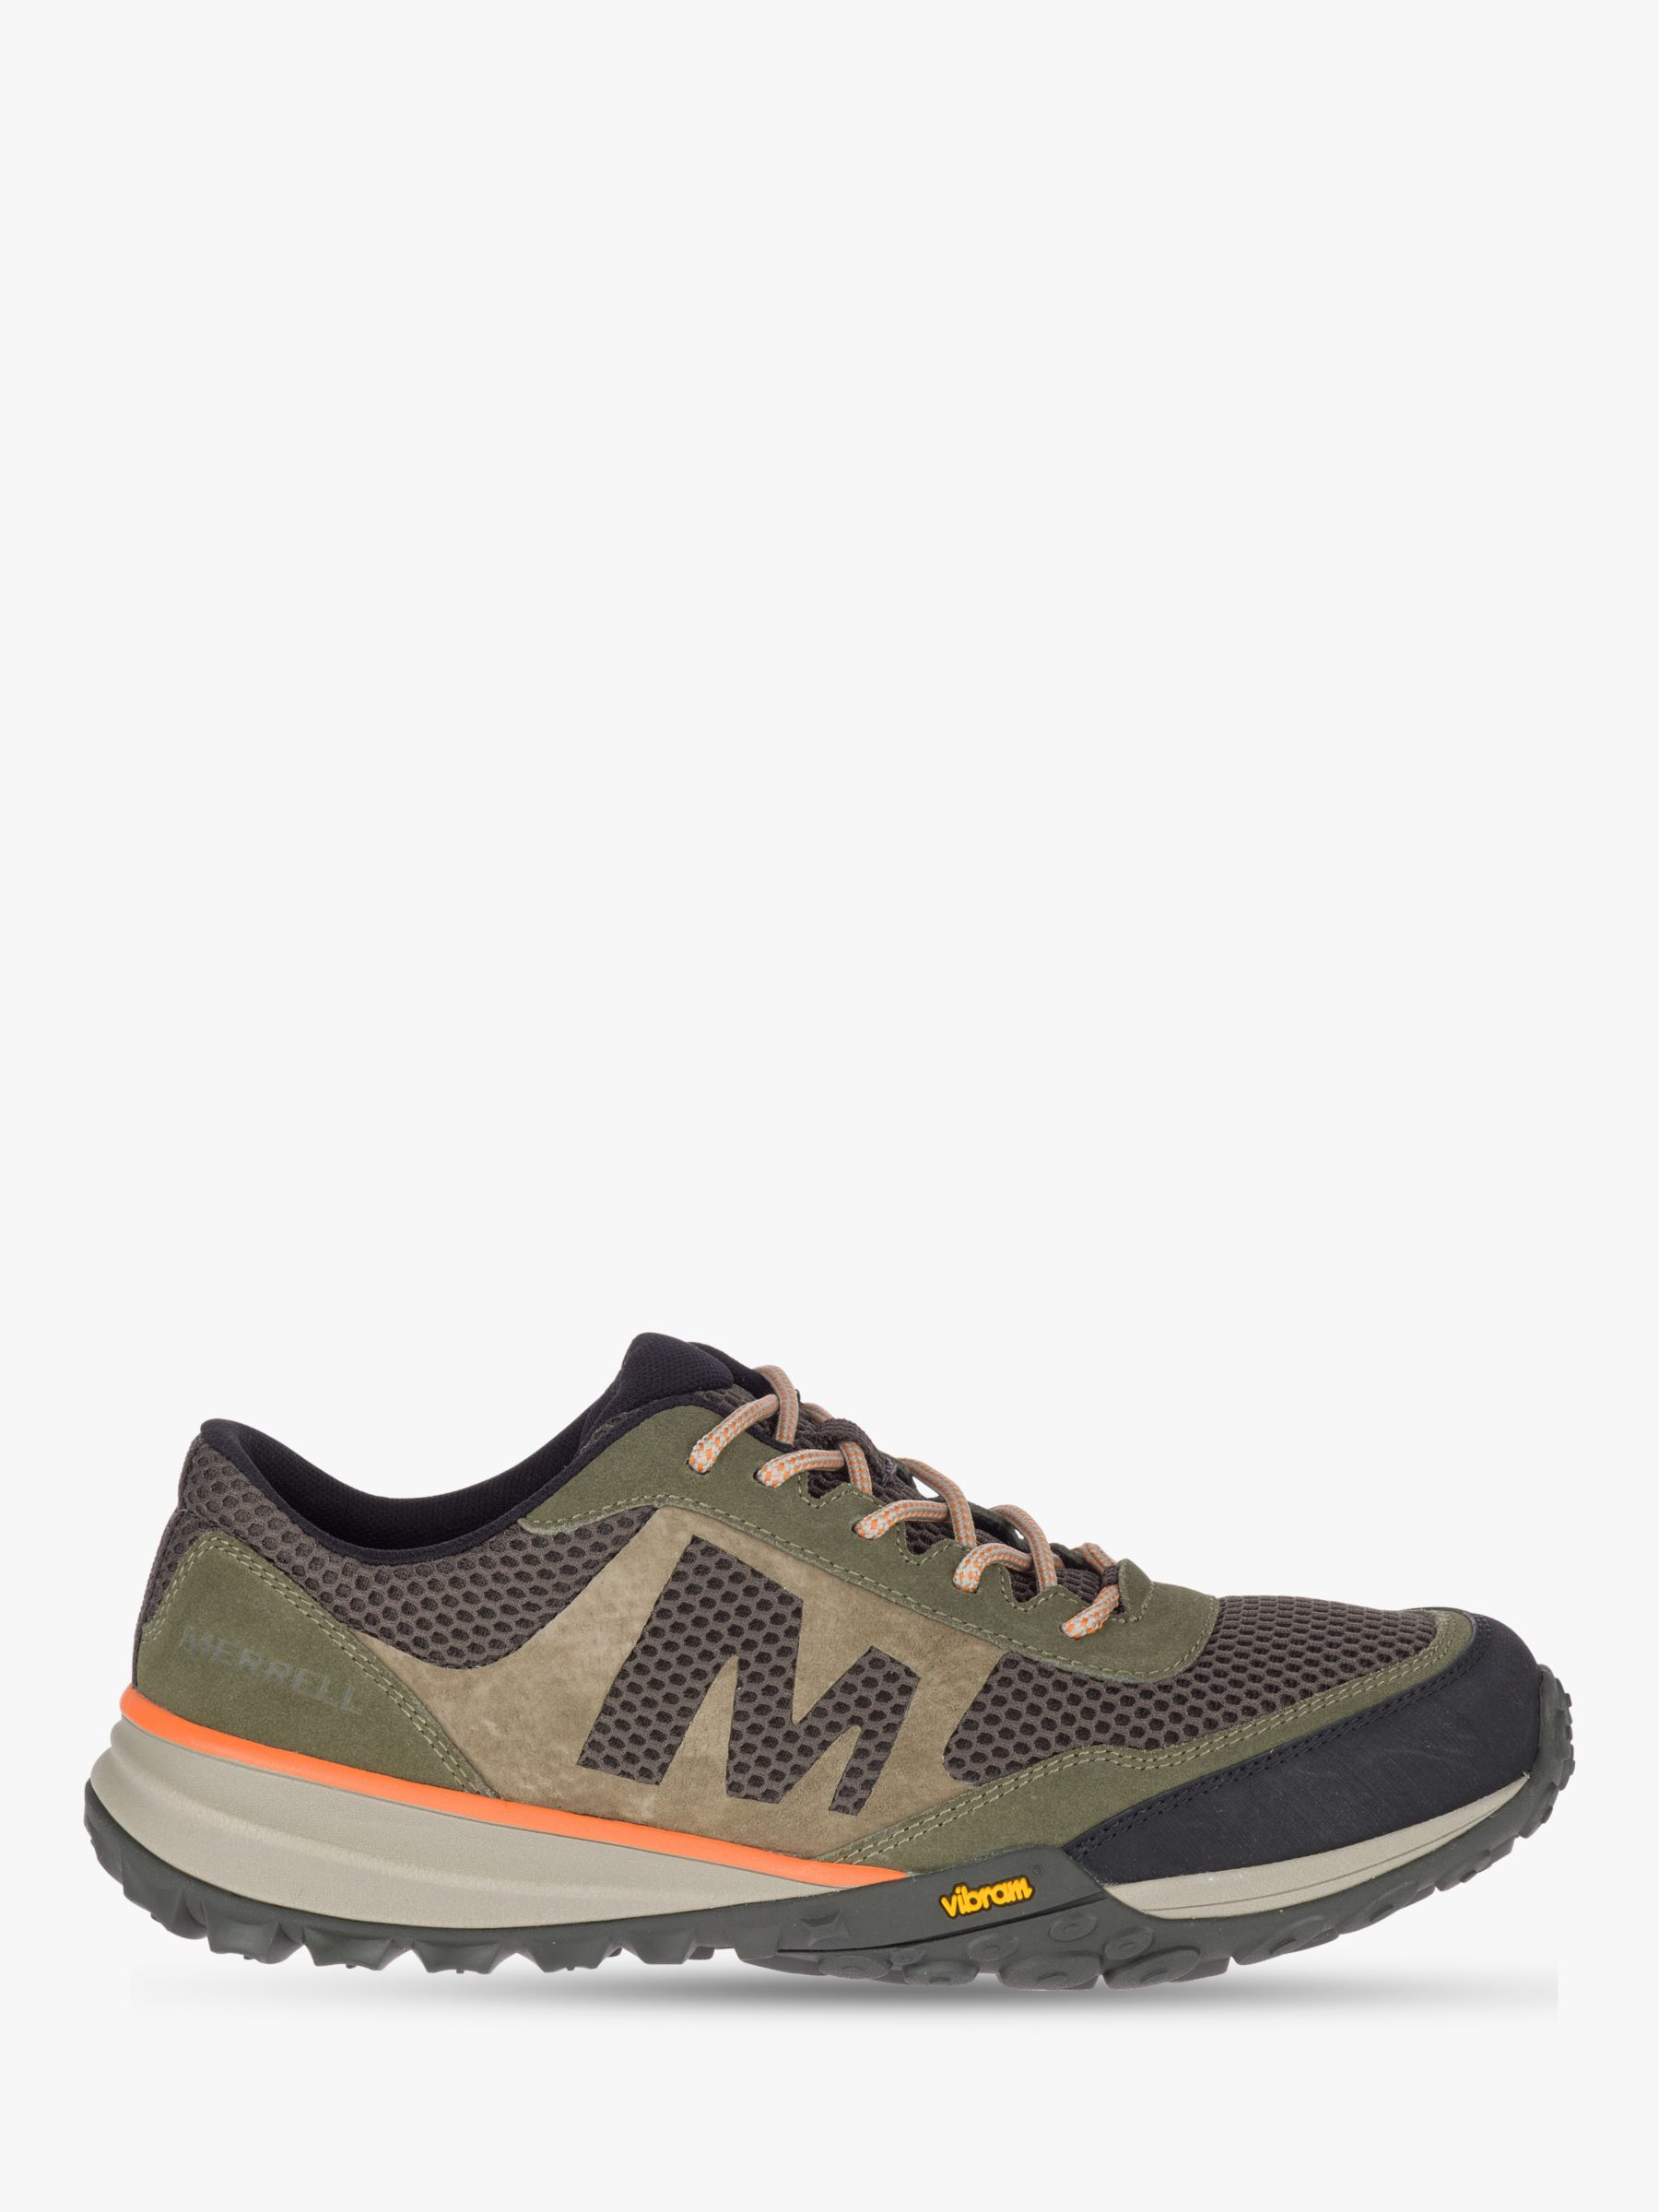 Merrell Merrell Havoc Vent Men's Walking Shoes, Olive